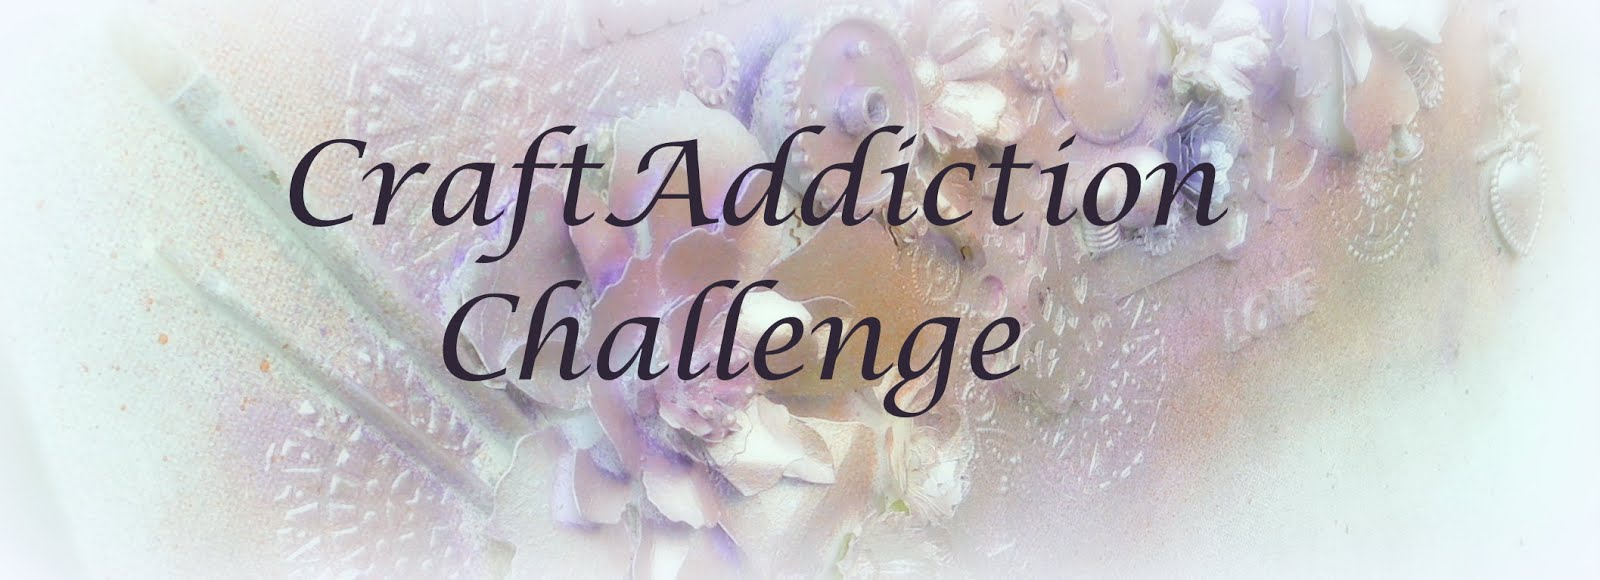 Craftaddictionchallenge